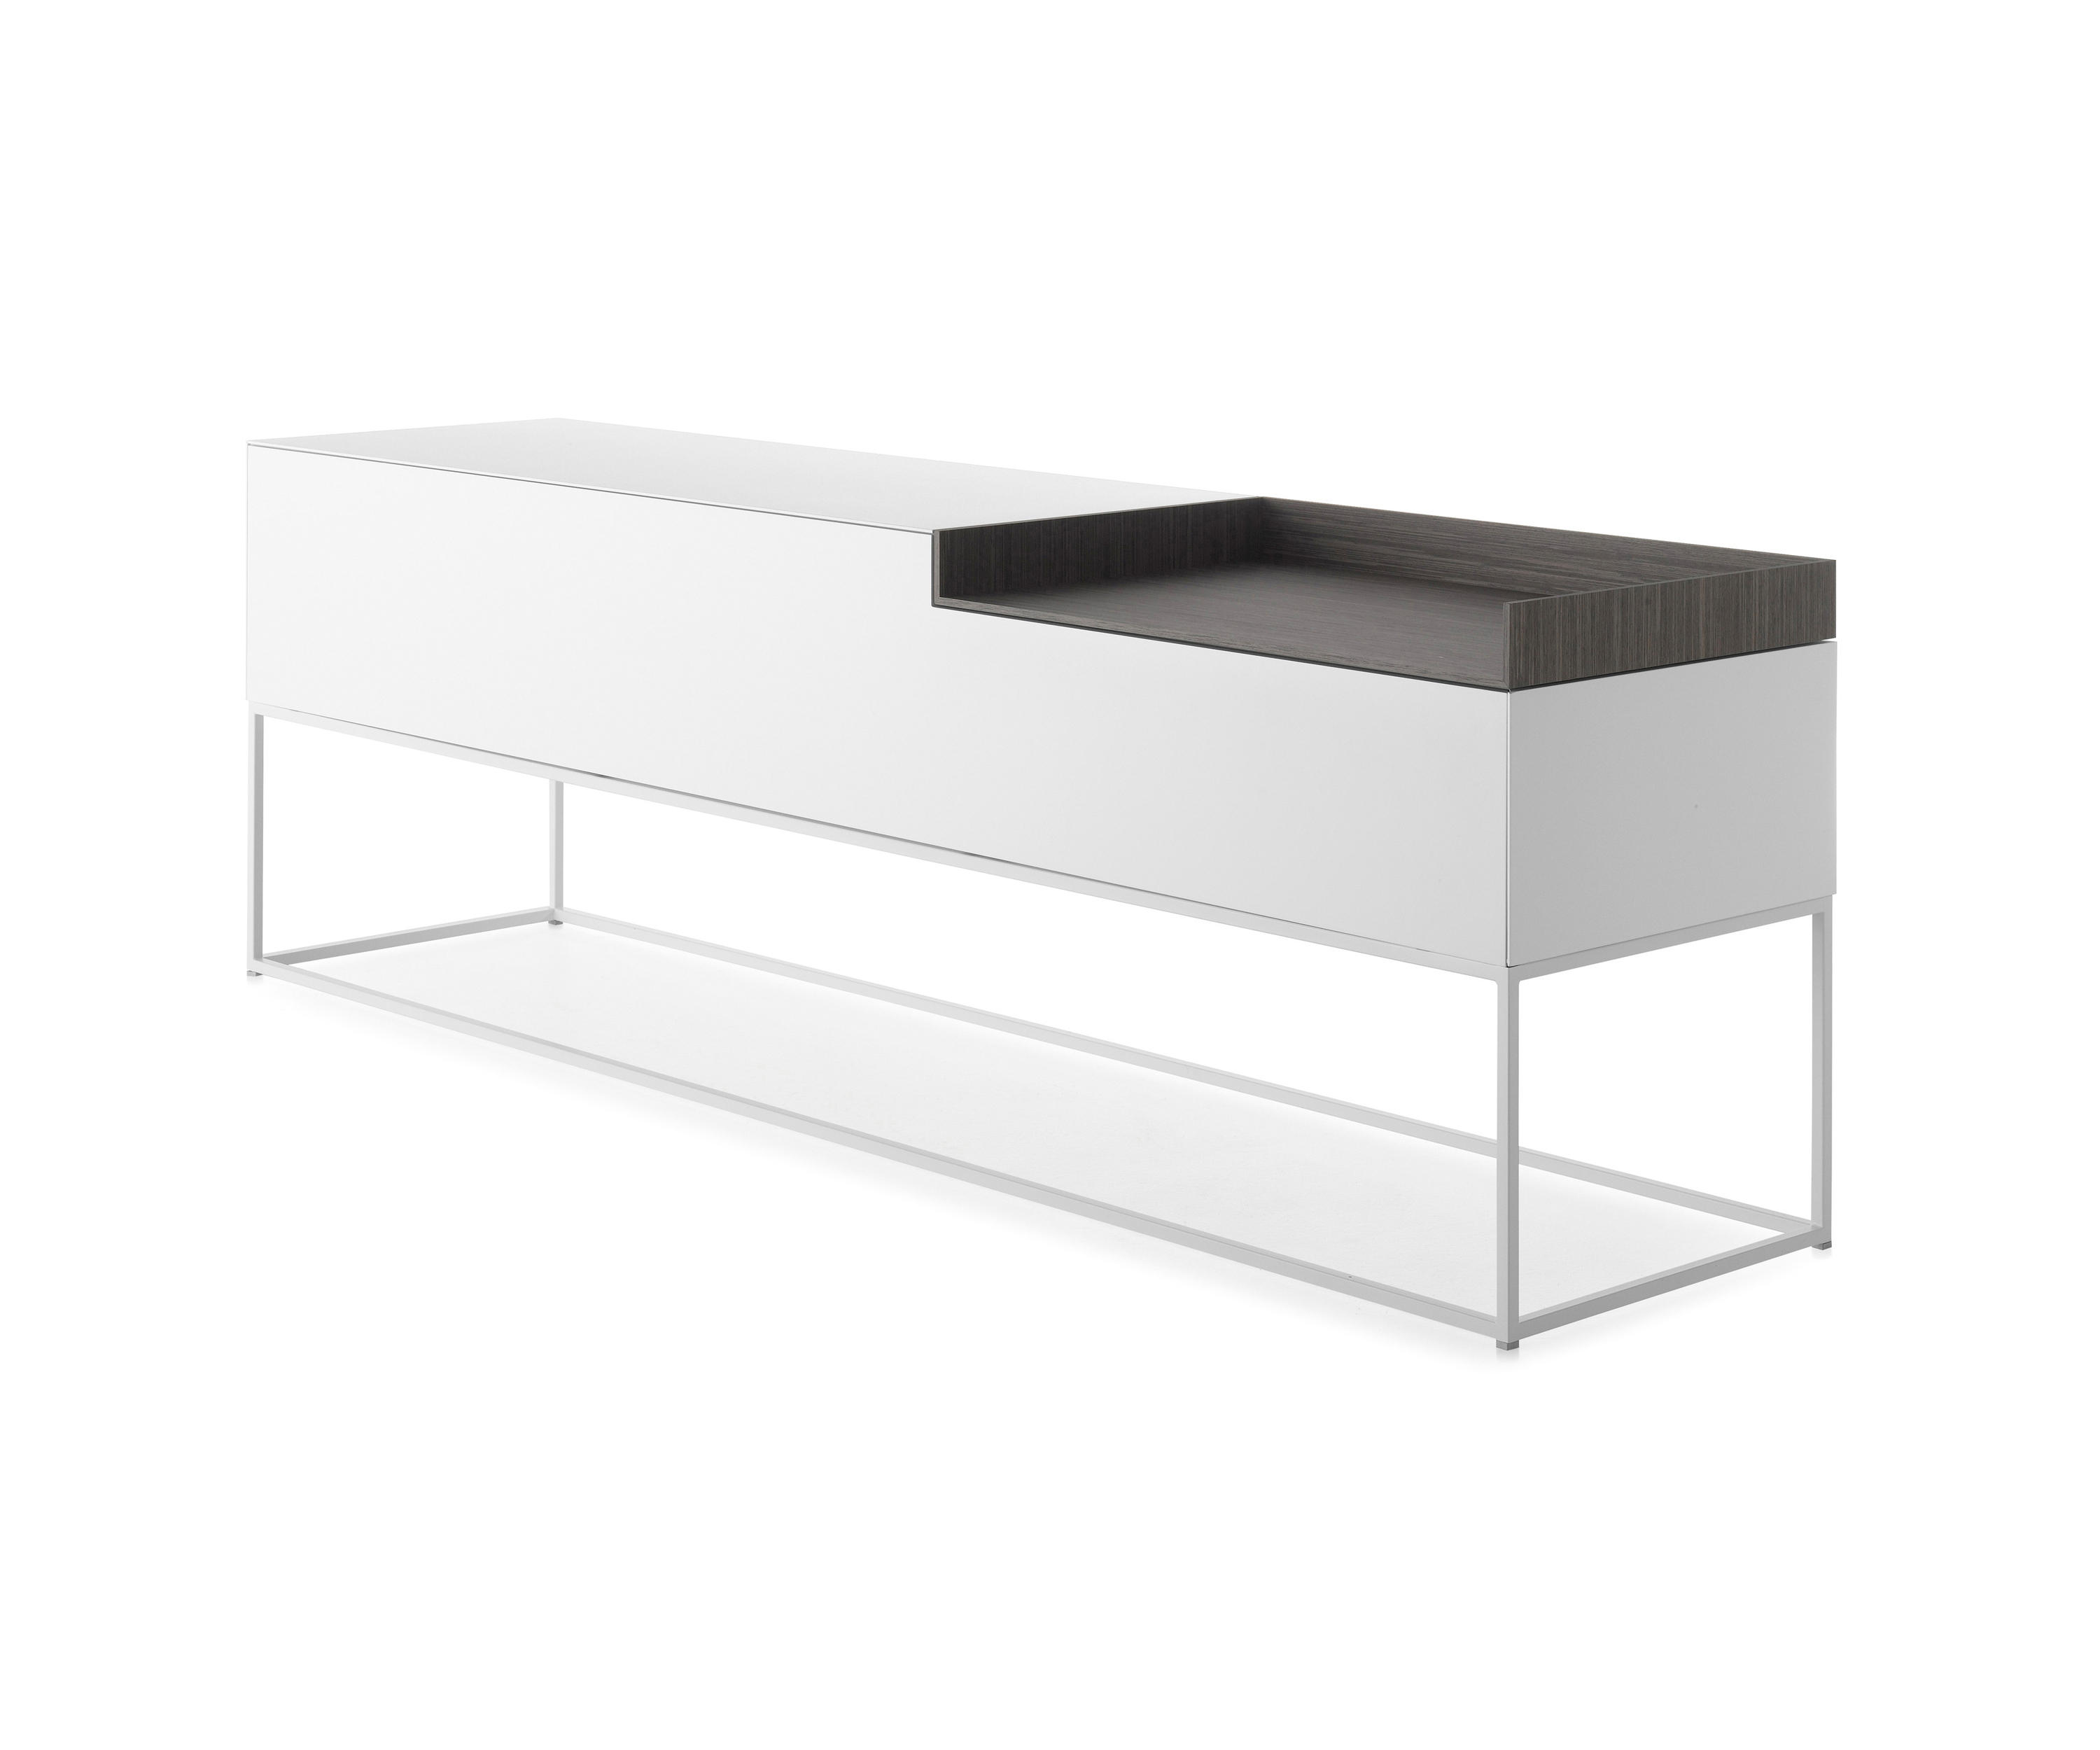 inmotion sideboard sideboards from mdf italia architonic. Black Bedroom Furniture Sets. Home Design Ideas